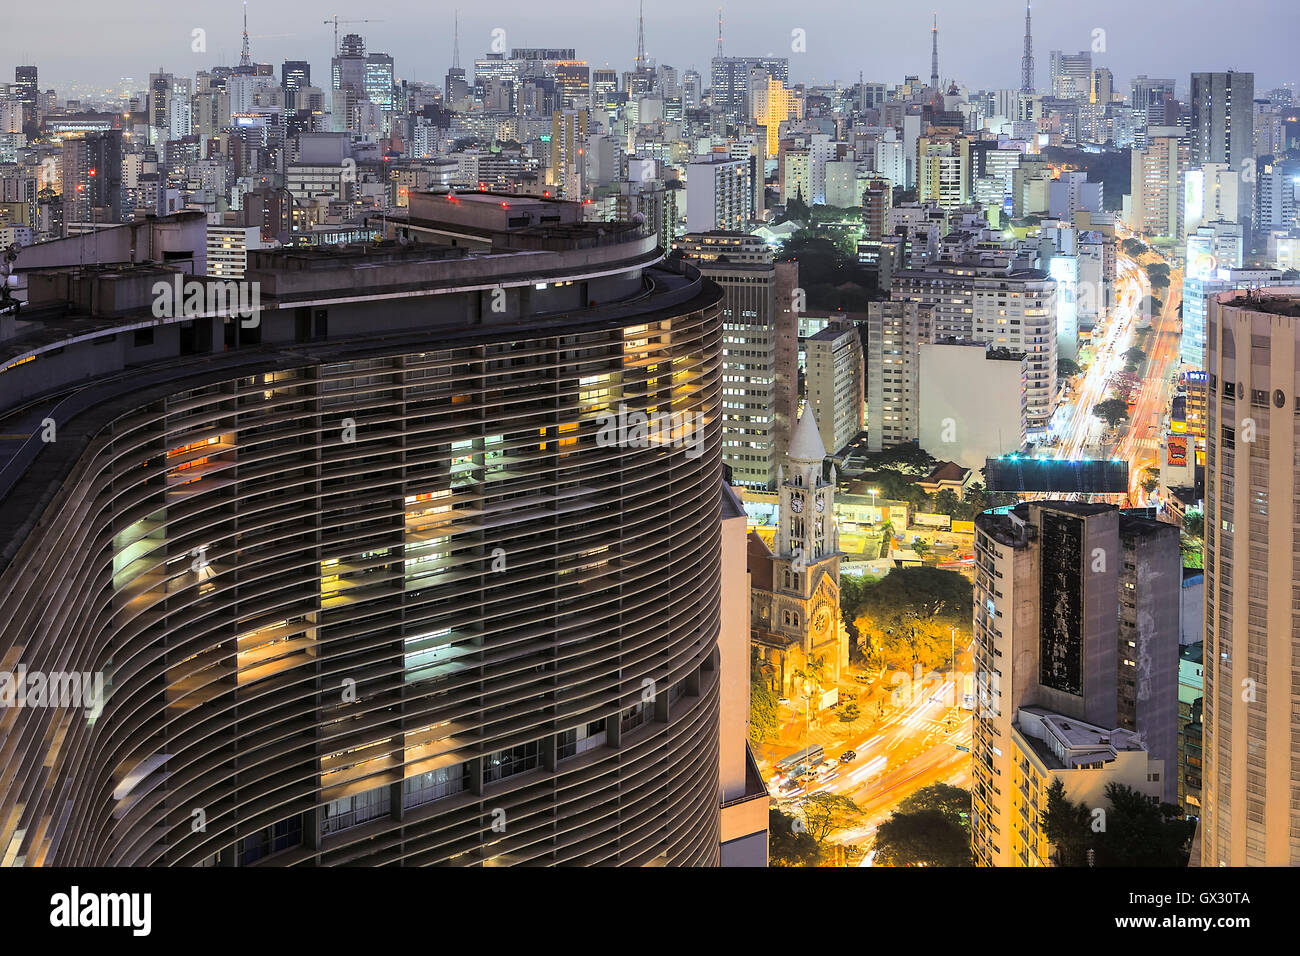 View of Sao Paulo city center with Niemeyer's Copan Buliding in the foreground - Stock Image